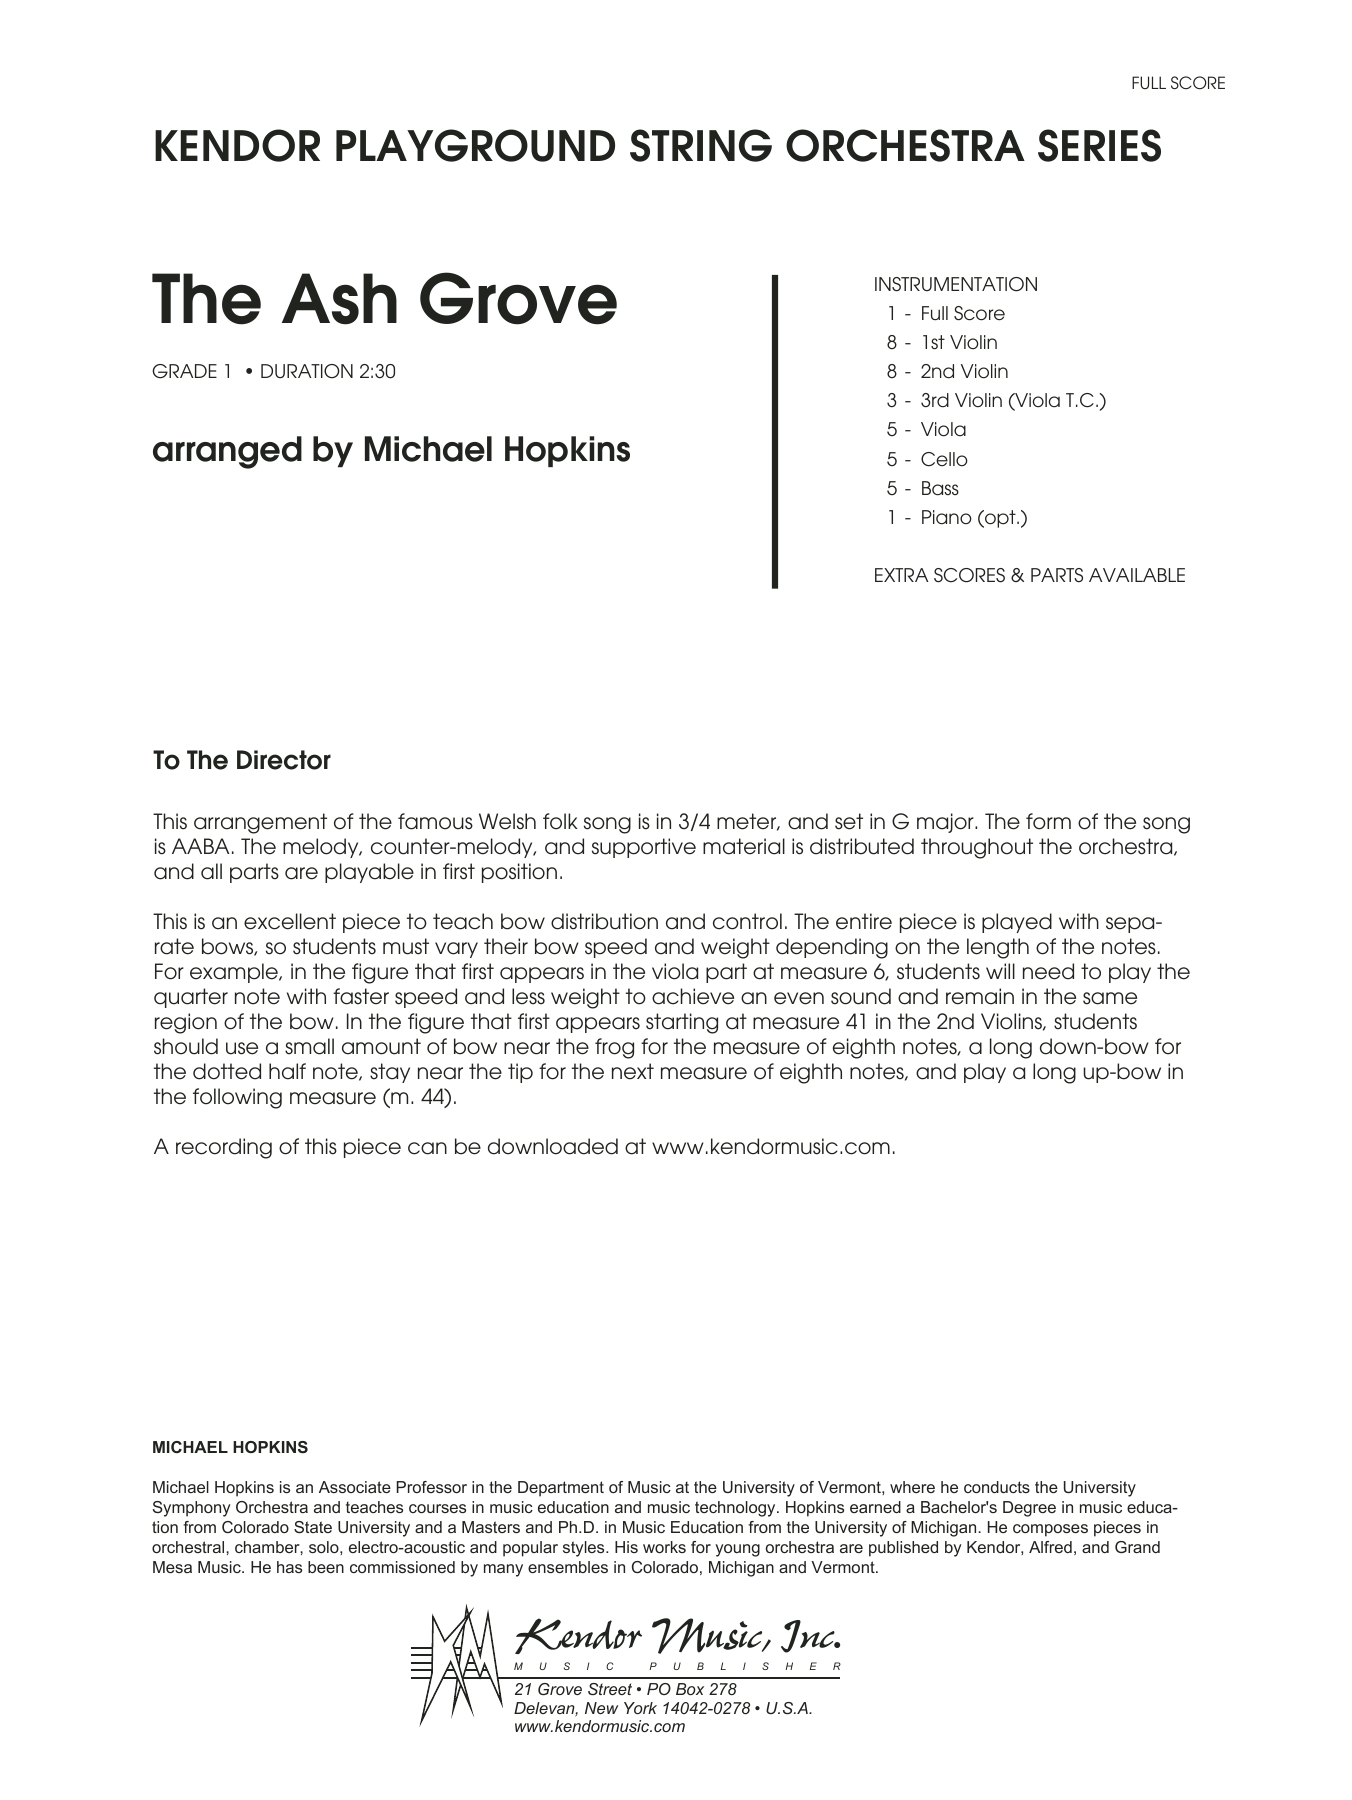 Michael Hopkins The Ash Grove - Full Score sheet music notes and chords. Download Printable PDF.